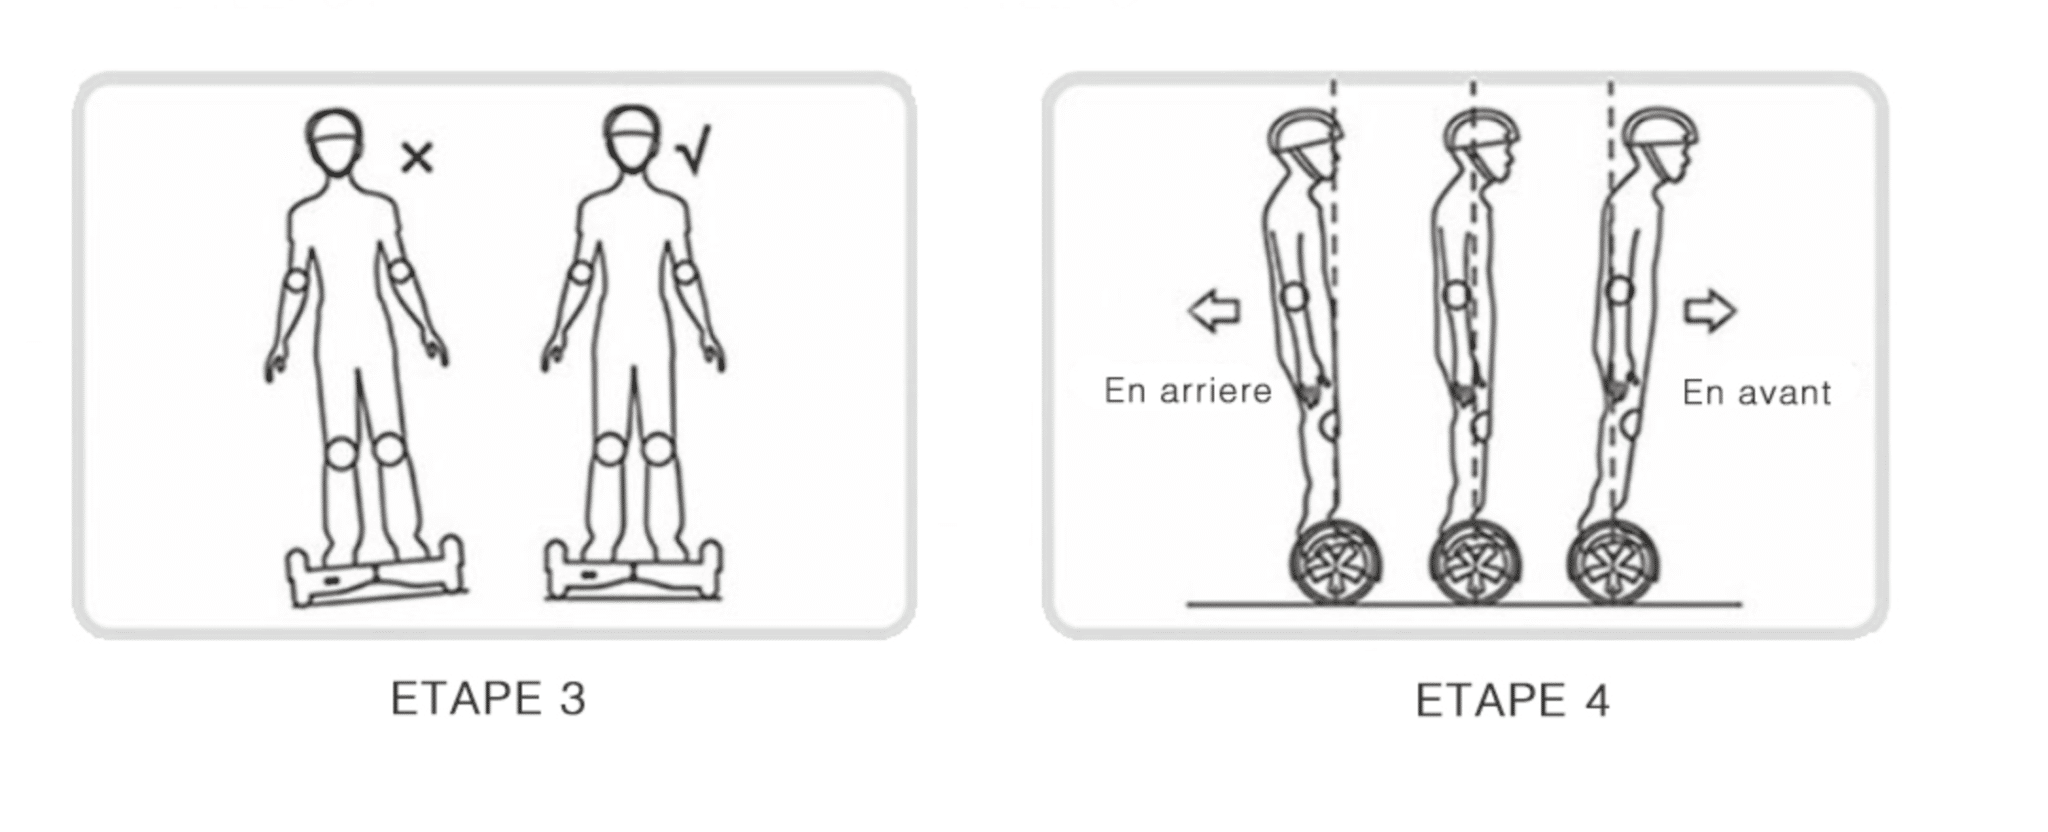 Comment faire de l hoverboard ?